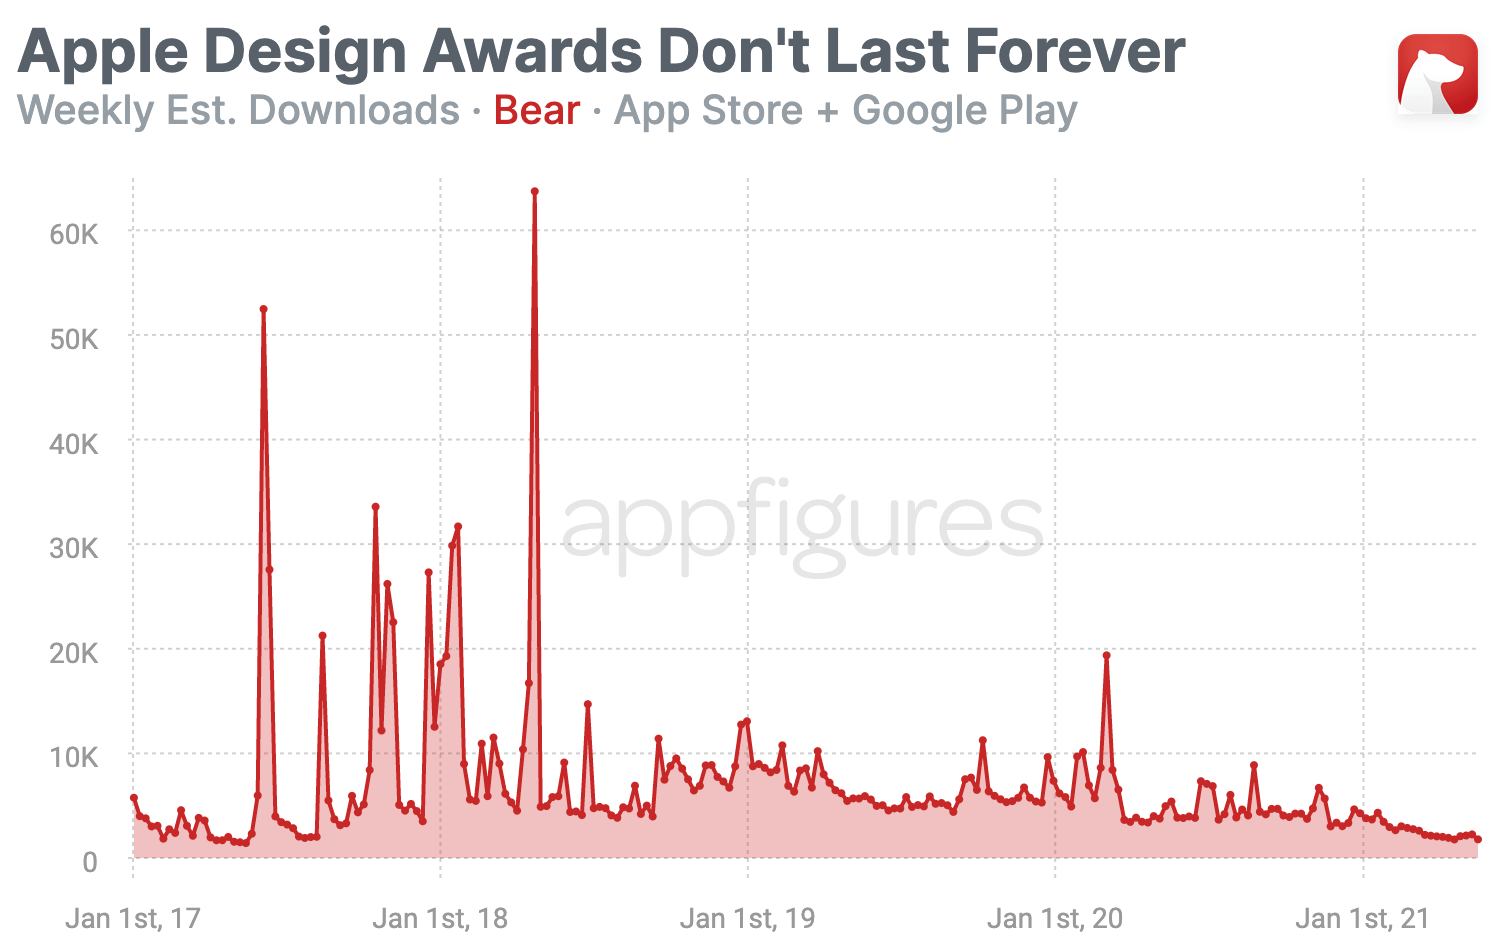 Trend of estimated downloads by Appfigures